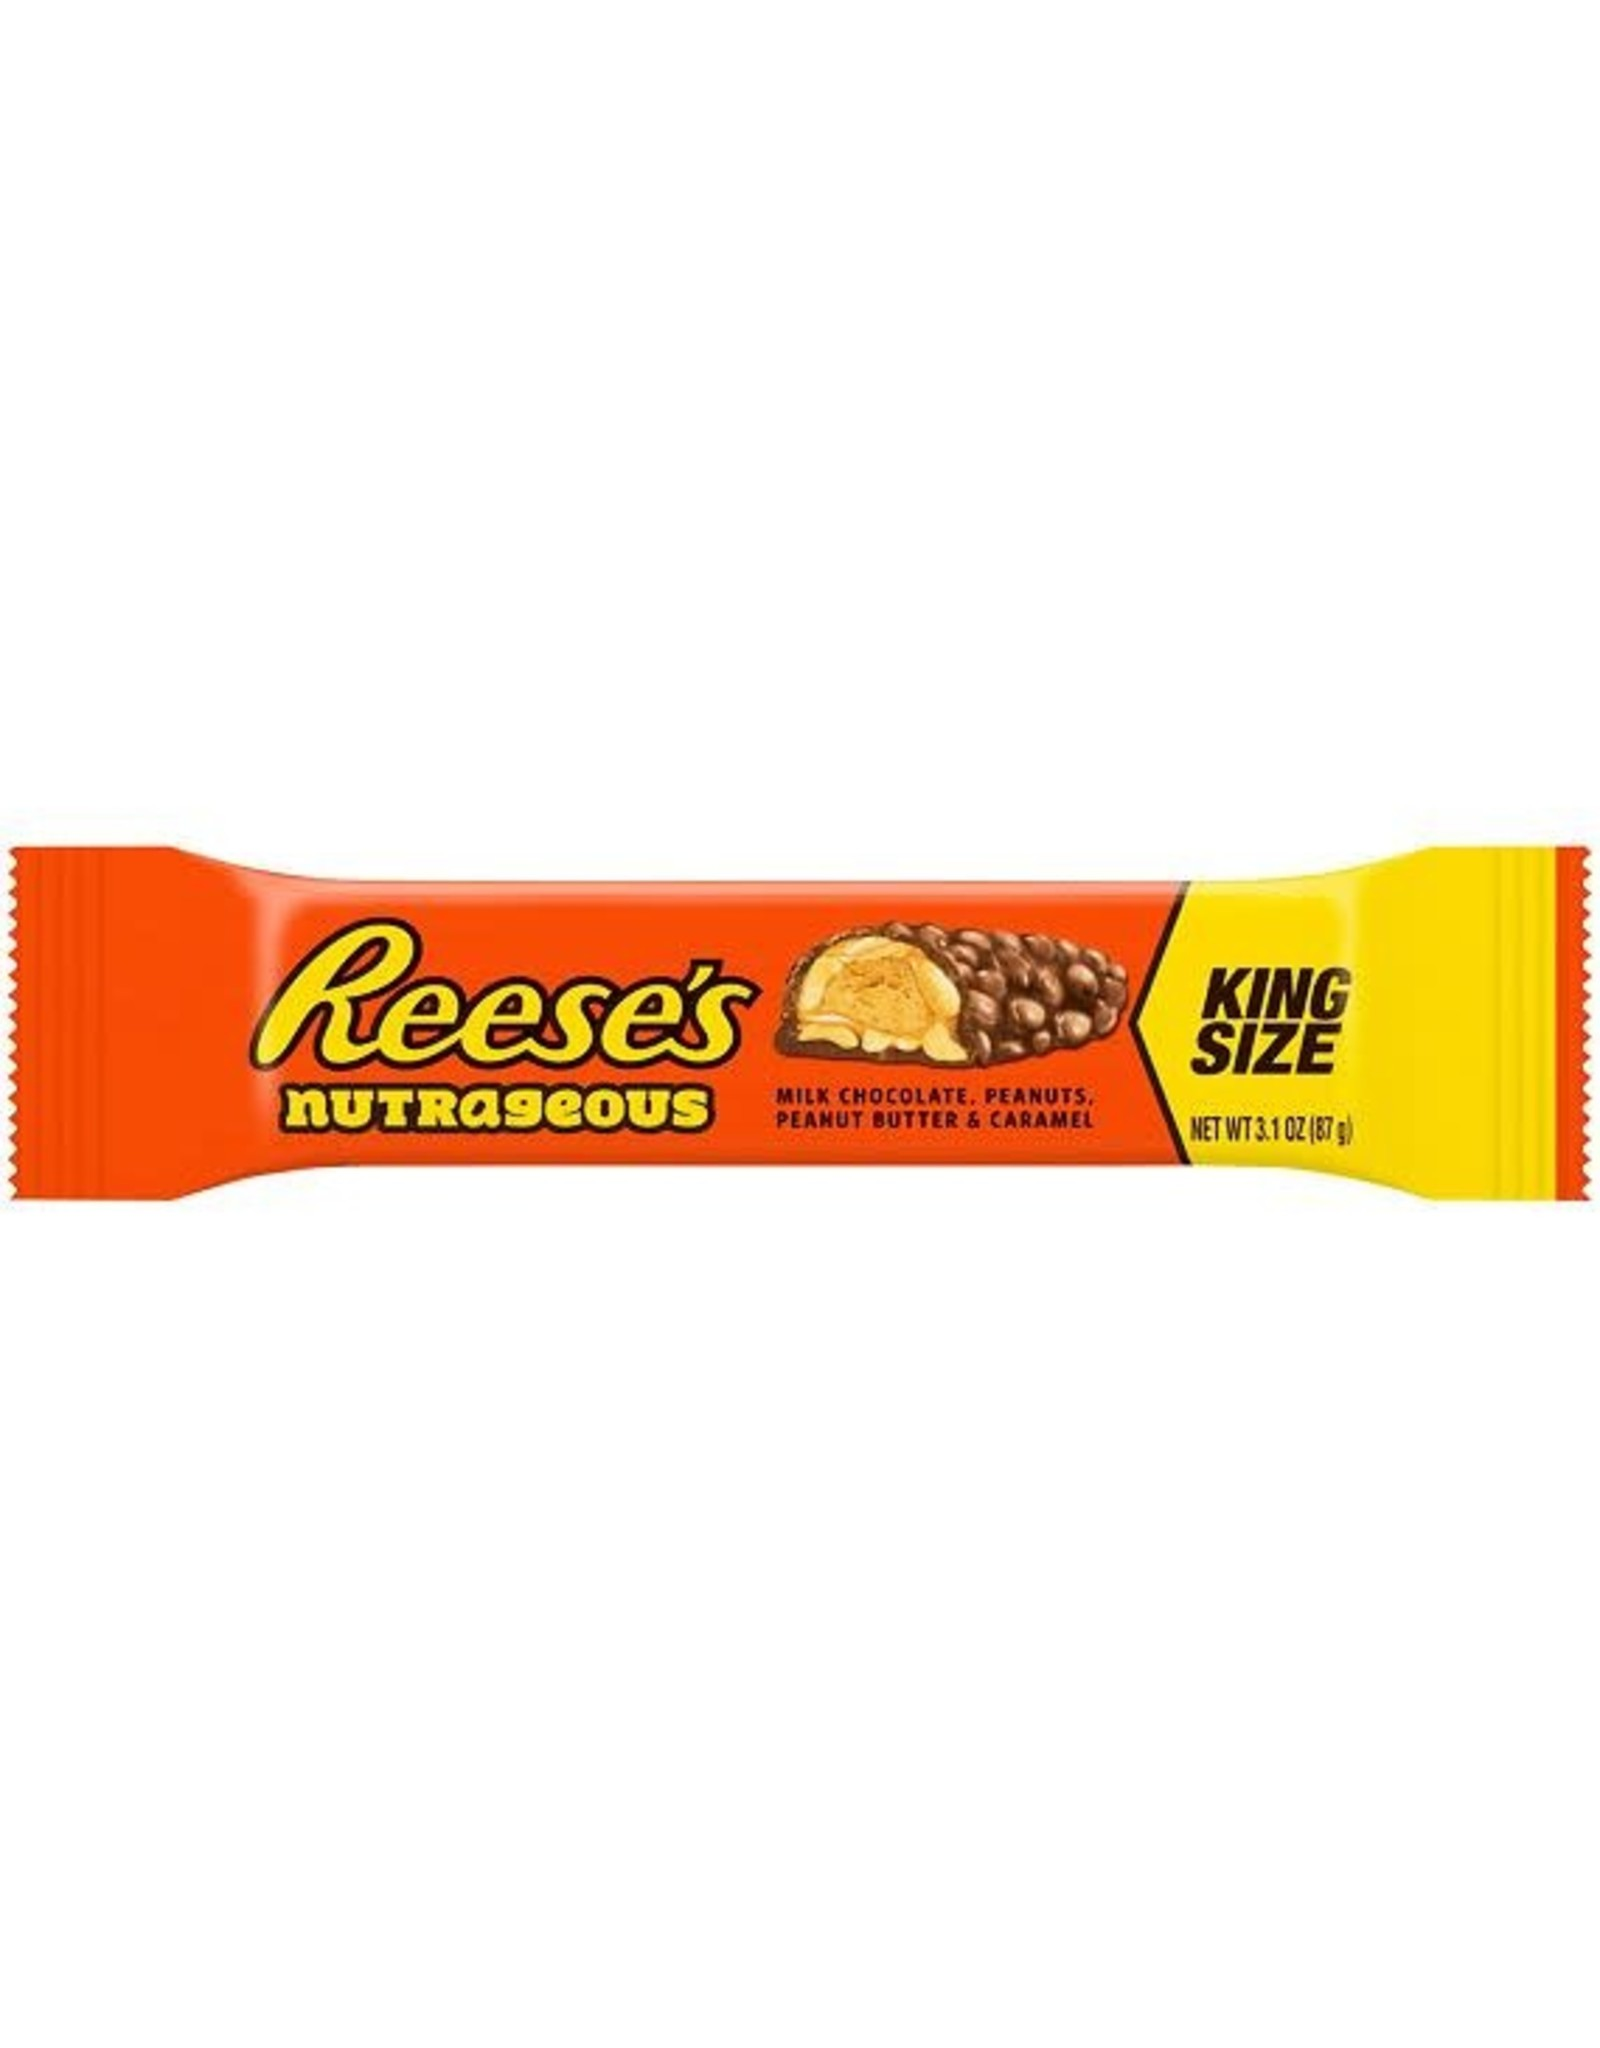 Reese's Nutrageous - King Size - 87g